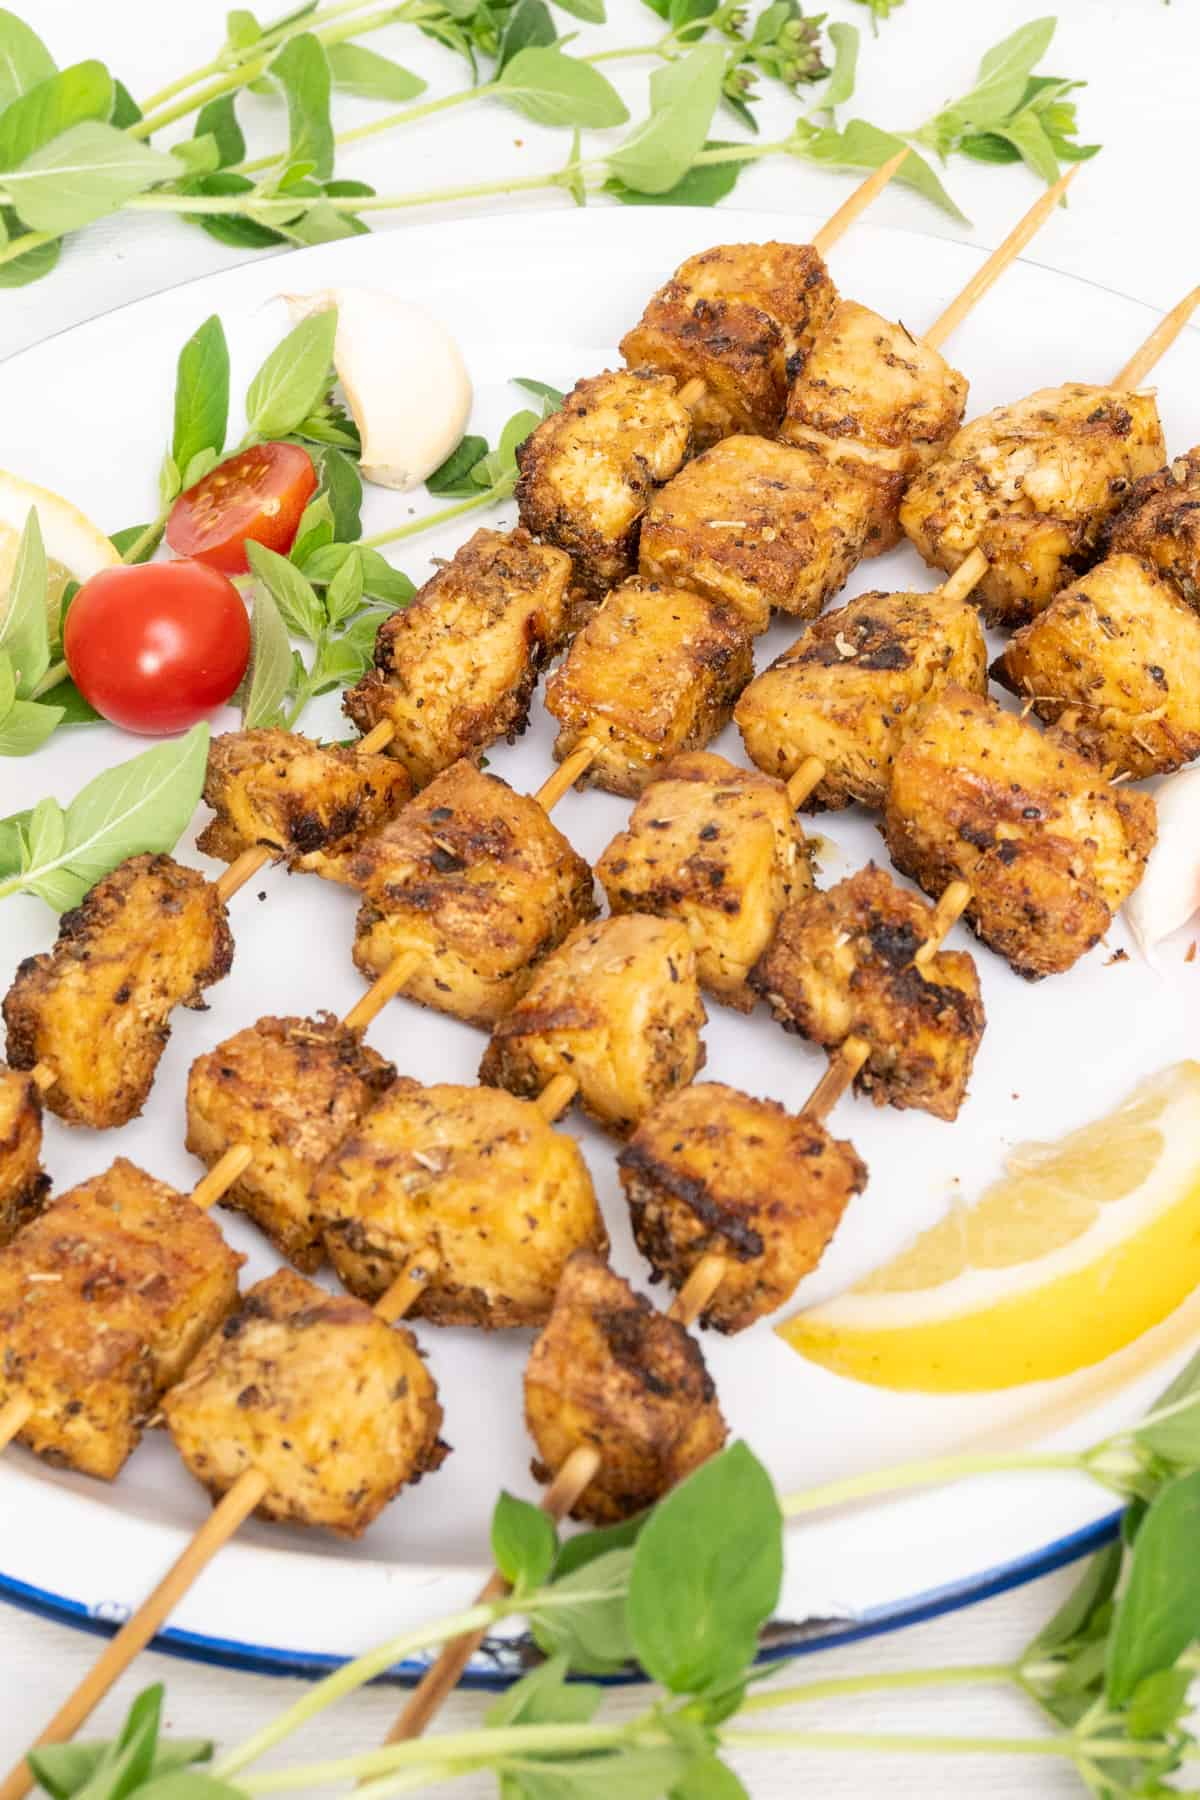 Grilled skewers of marinated tofu served on a plate with fresh oregano, cherry tomatoes, a wedge of lemon, plus a clove of garlic as decoration.